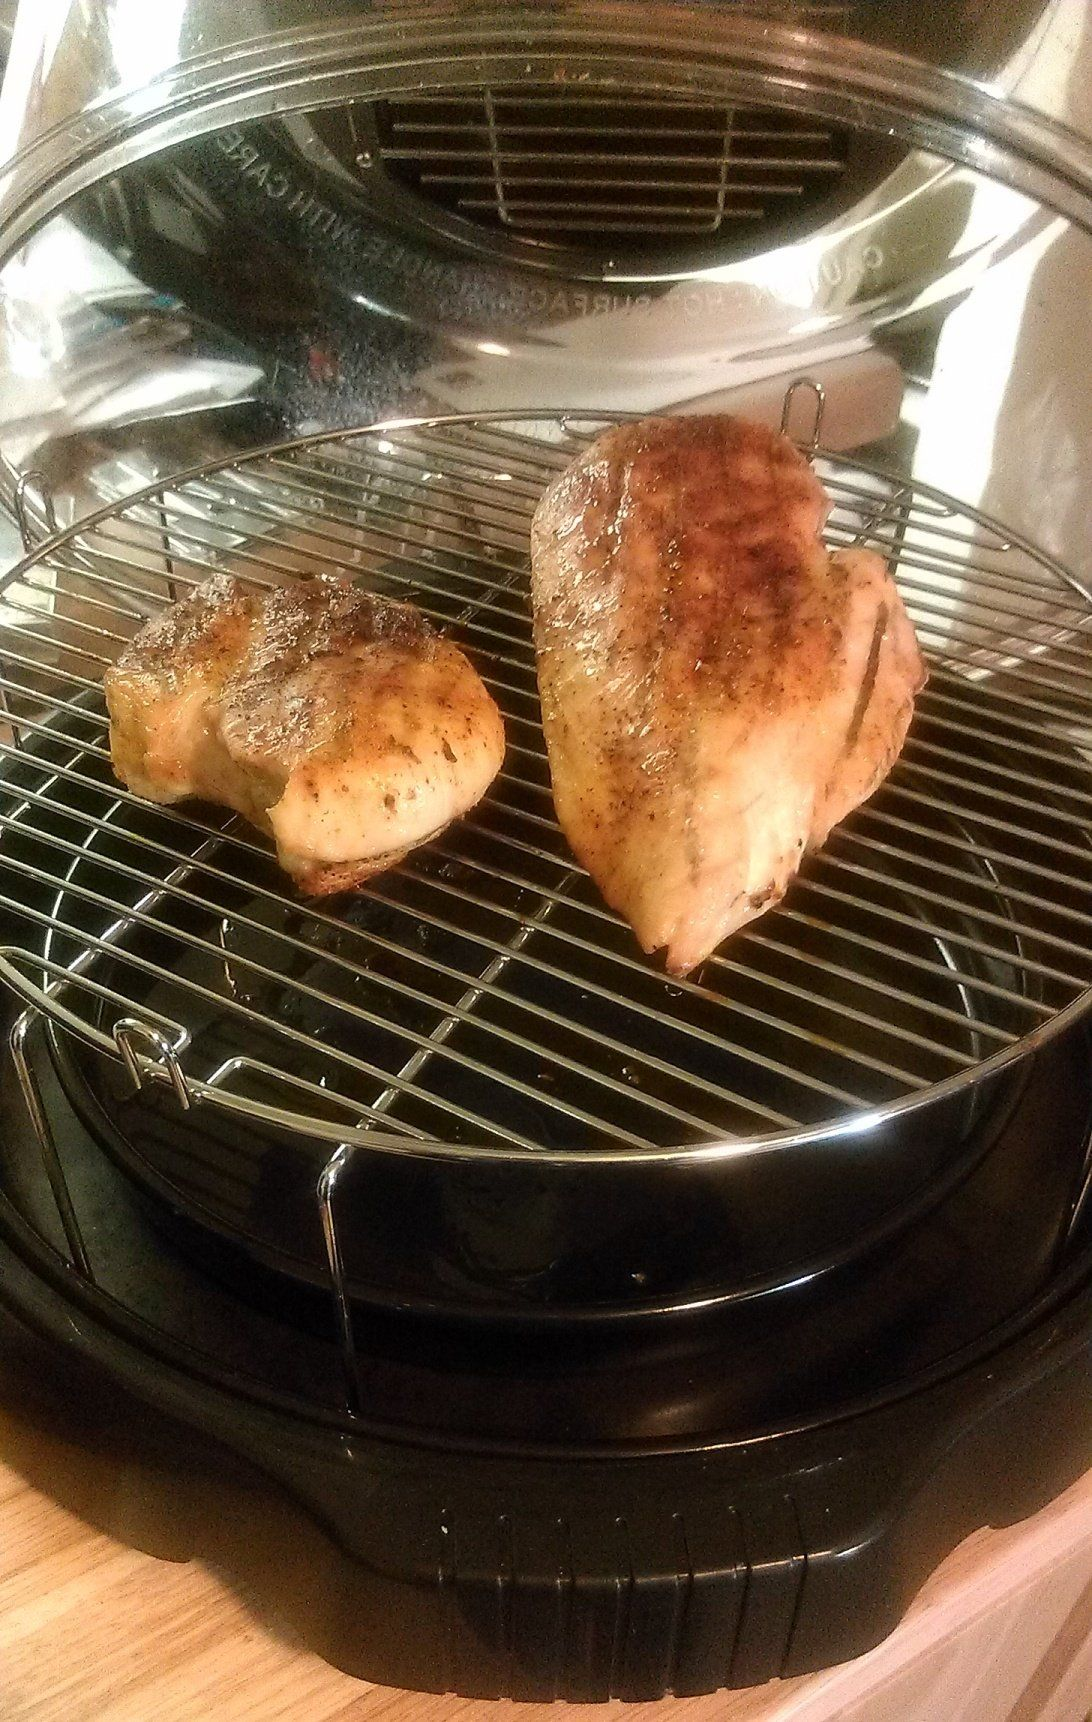 Even Standard Chicken Breasts Come Out Extra Juicy When